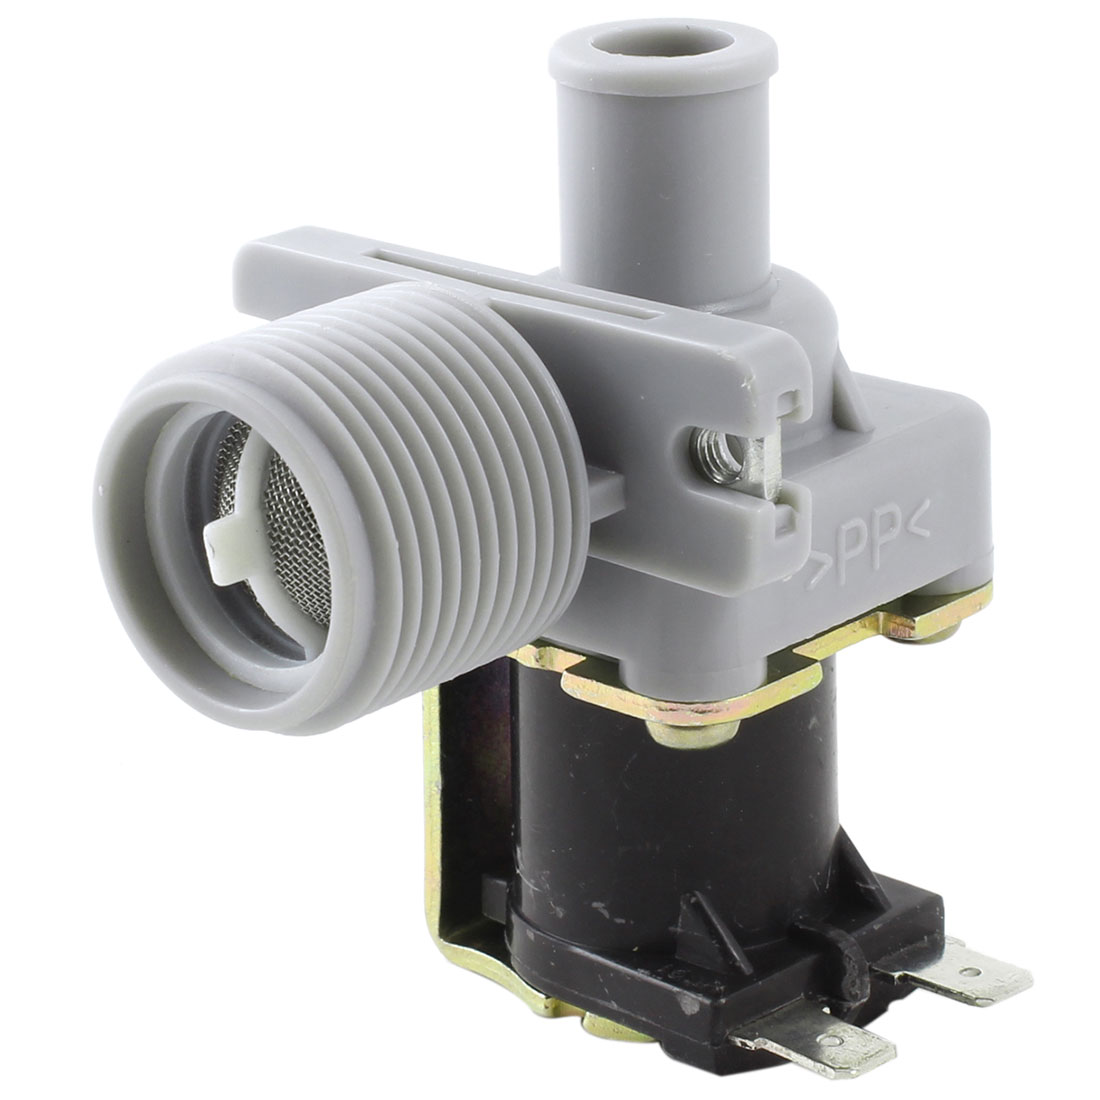 AC 220-240V 50/60Hz Water Inlet Solenoid Valve for LG Washing Machine Washer